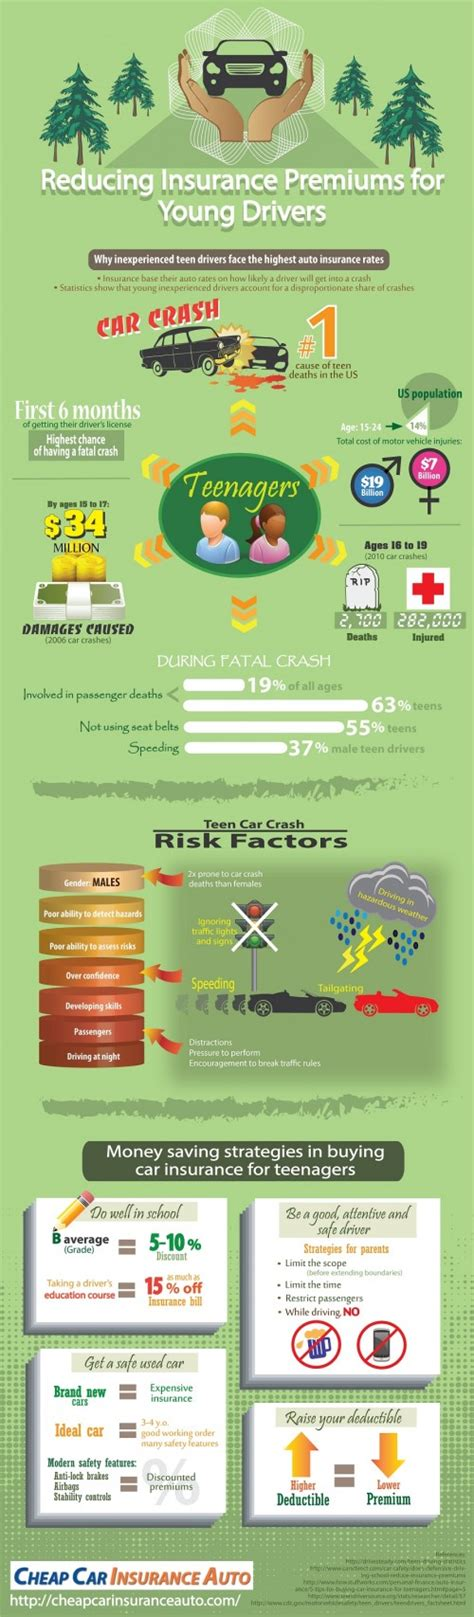 Best Place To Get Insurance For Drivers - car insurance for drivers infographic